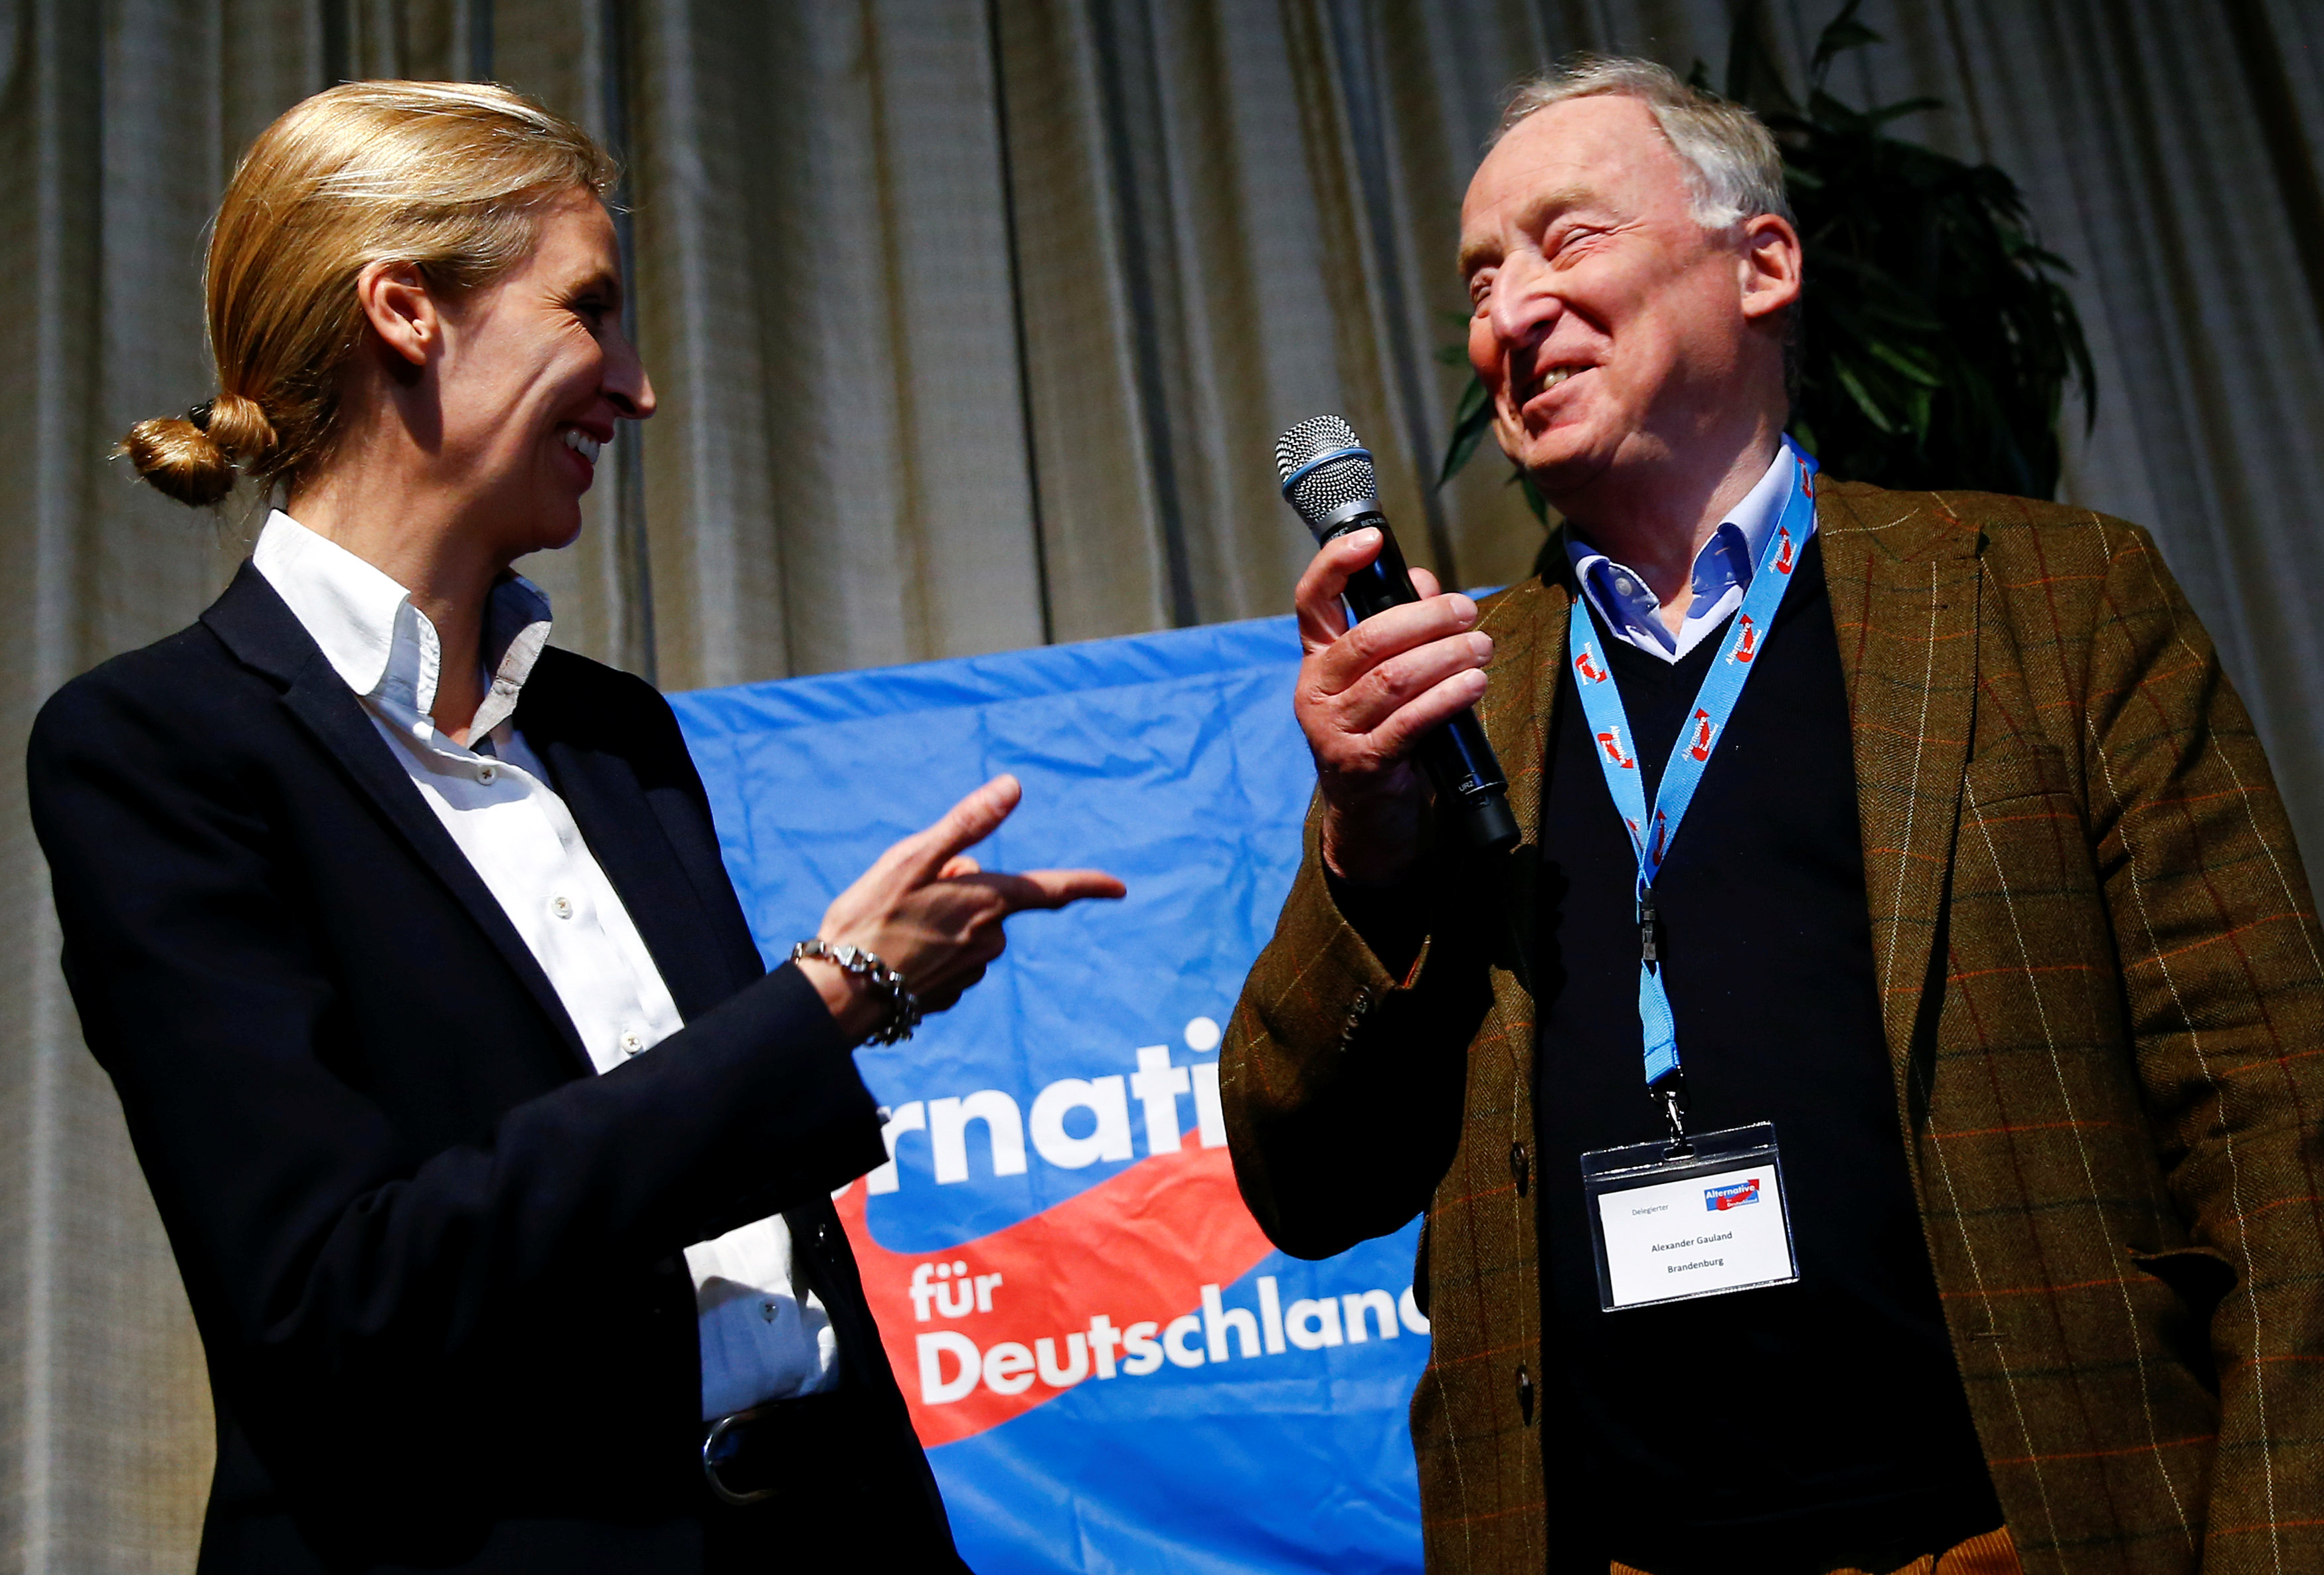 Germany's AfD picks leaders for election drive, seen shifting right